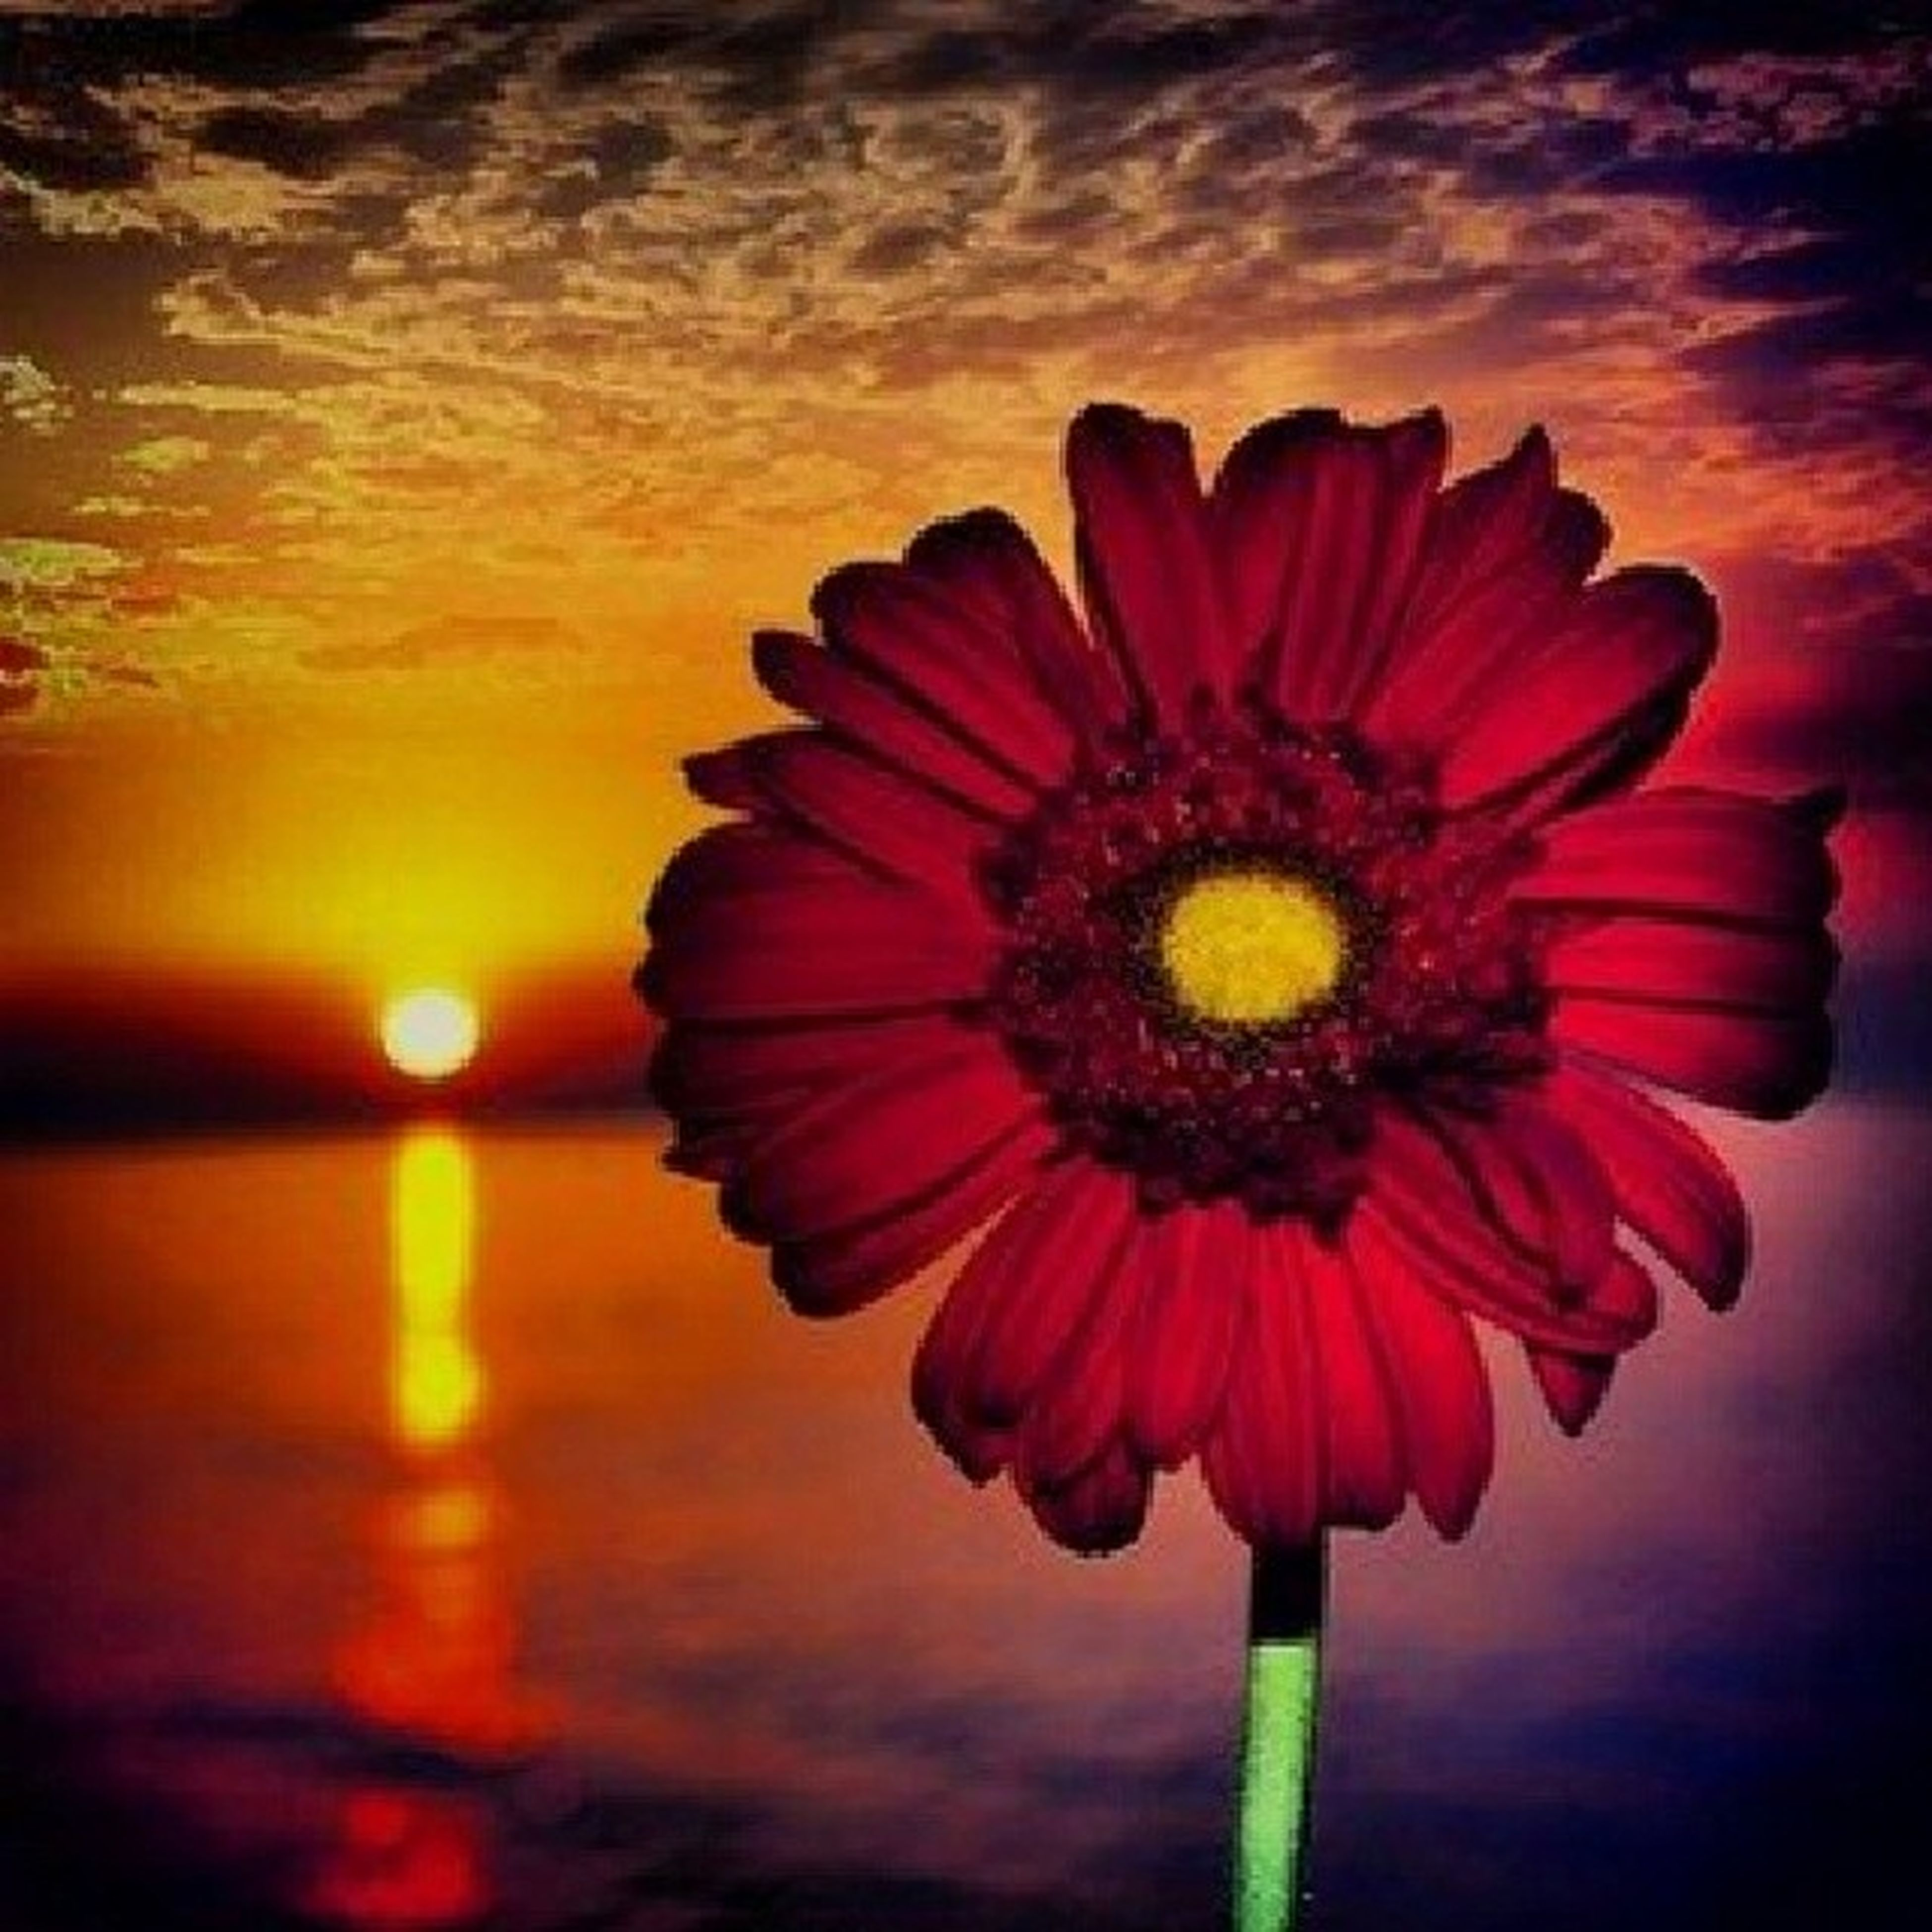 flower, petal, freshness, flower head, fragility, beauty in nature, growth, pollen, nature, single flower, blooming, close-up, red, sky, yellow, orange color, stem, sunset, plant, in bloom